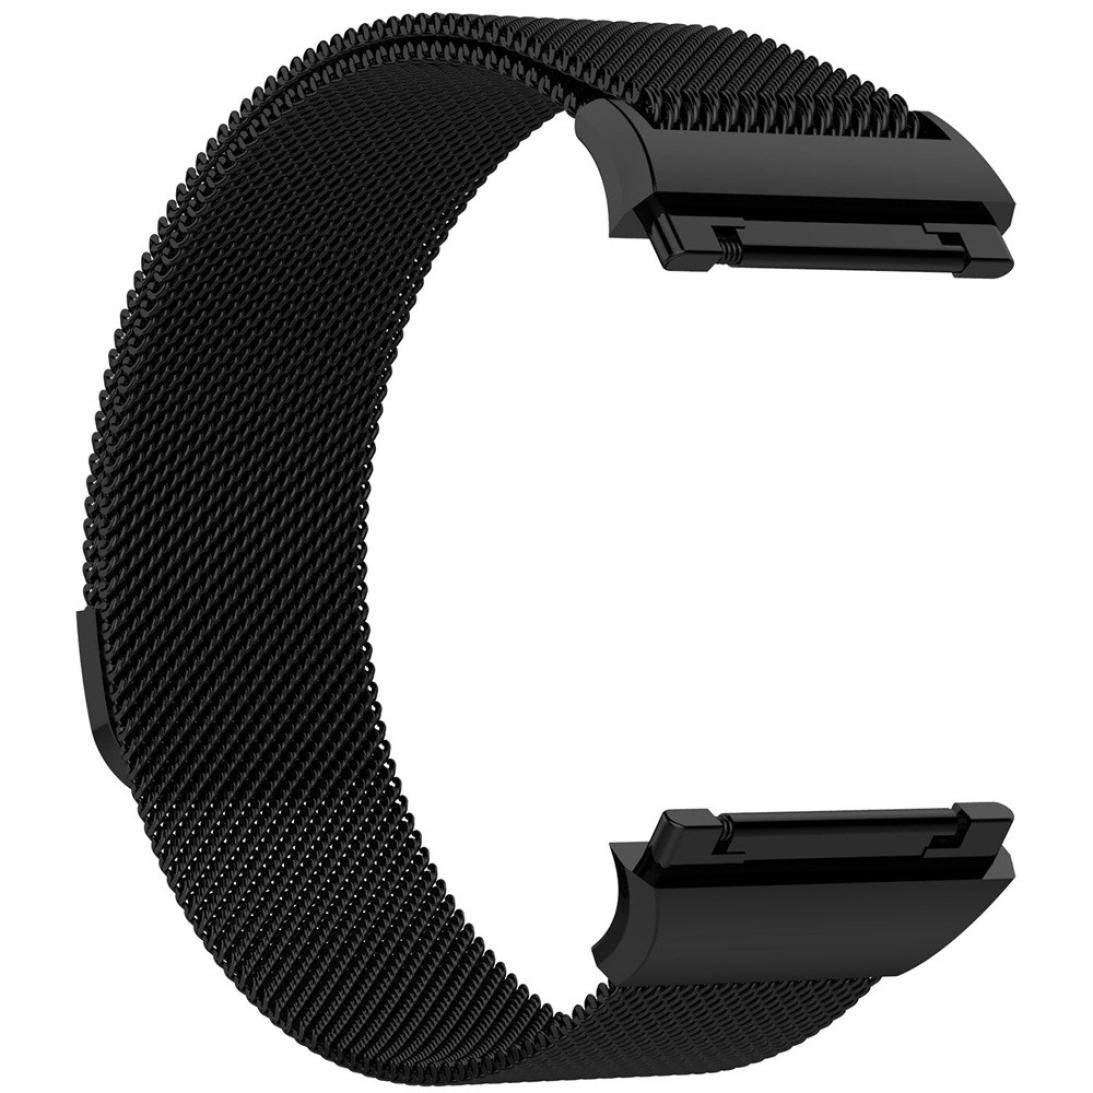 Milanese straps,RTYou(TM) Hot sales Magnetic Lock Milanese Loop Stainless Steel Replacement Strap For Fitbit Ionic